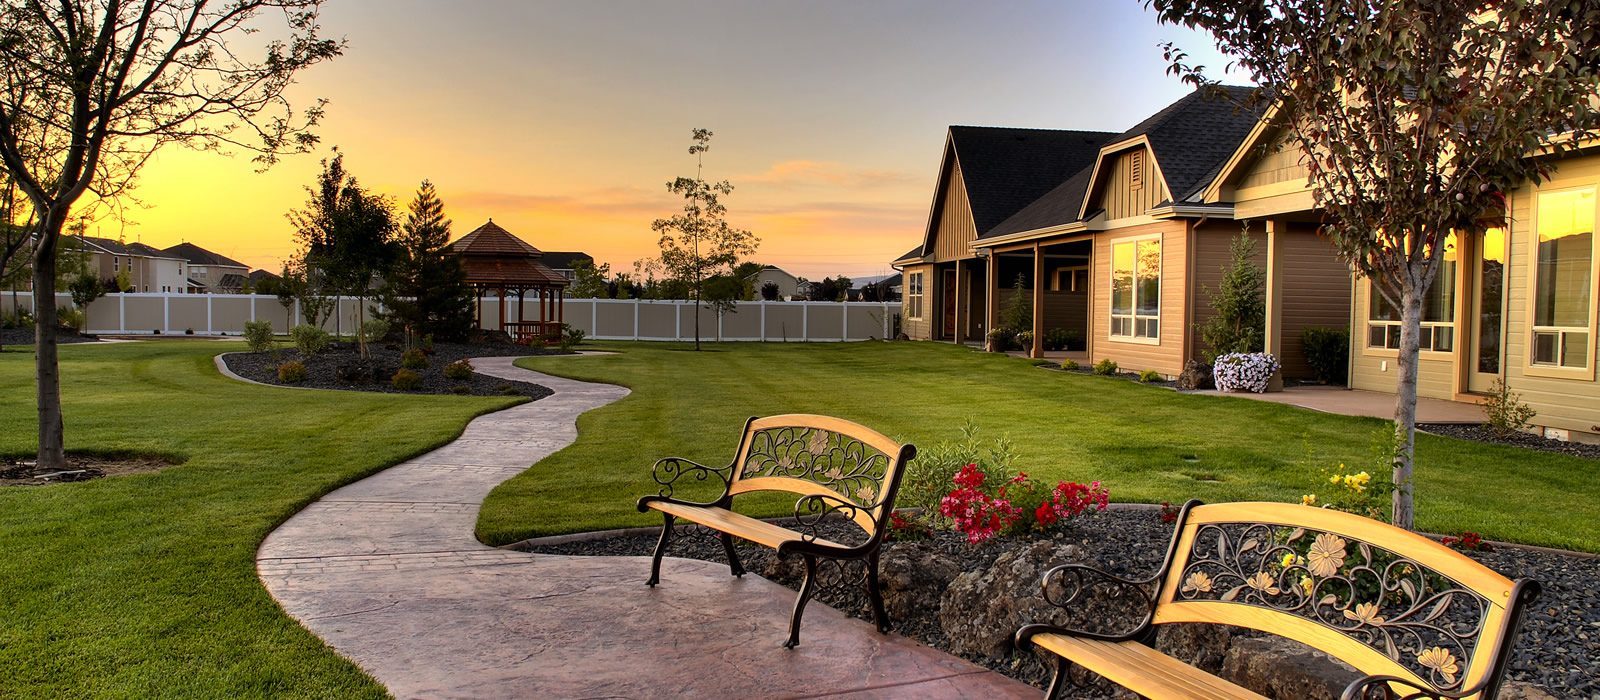 Sw boise idaho new subdivisions homes for sale home builders for Building a house in idaho